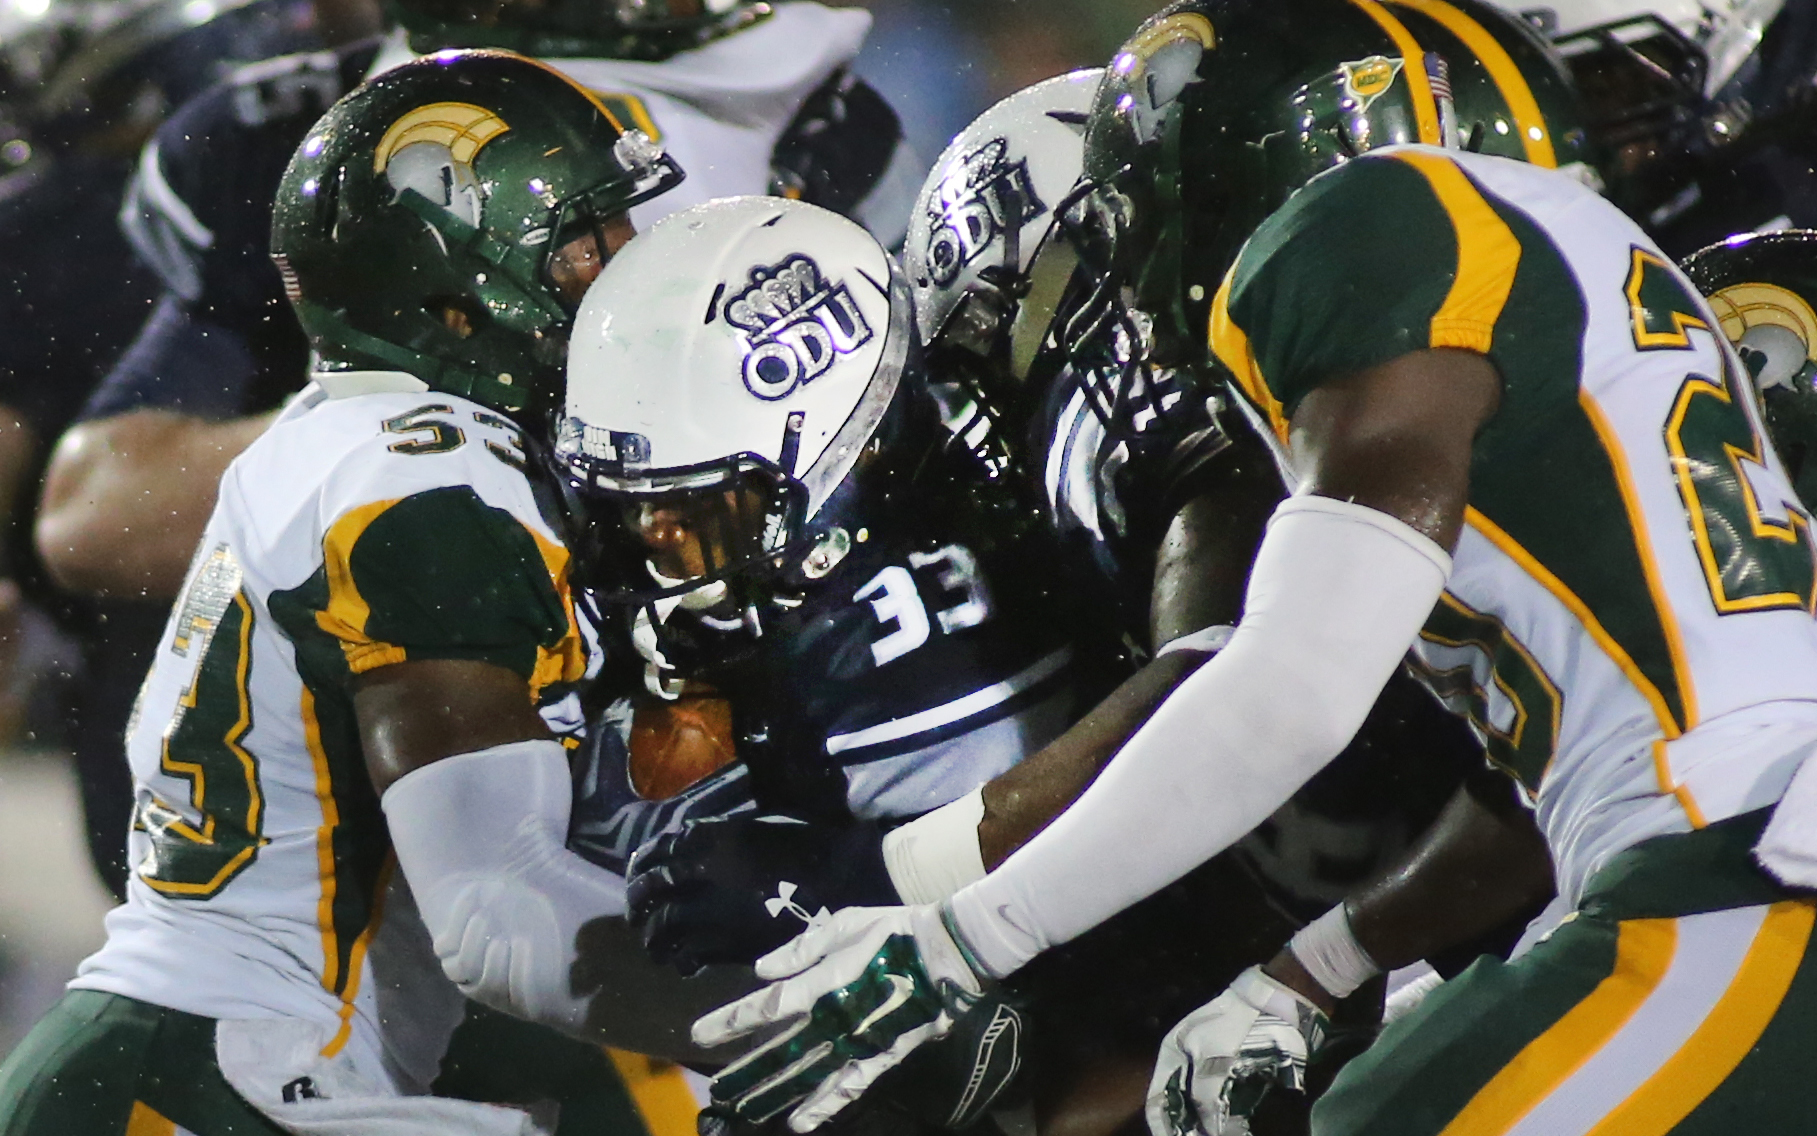 Old Dominion's Ray Lawry muscles through Norfolk State defenders Deon King, left, and Brandon Walker on his way to a second-quarter touchdown, Saturday, Sept. 12, 2015 at Foreman Field in Norfolk.